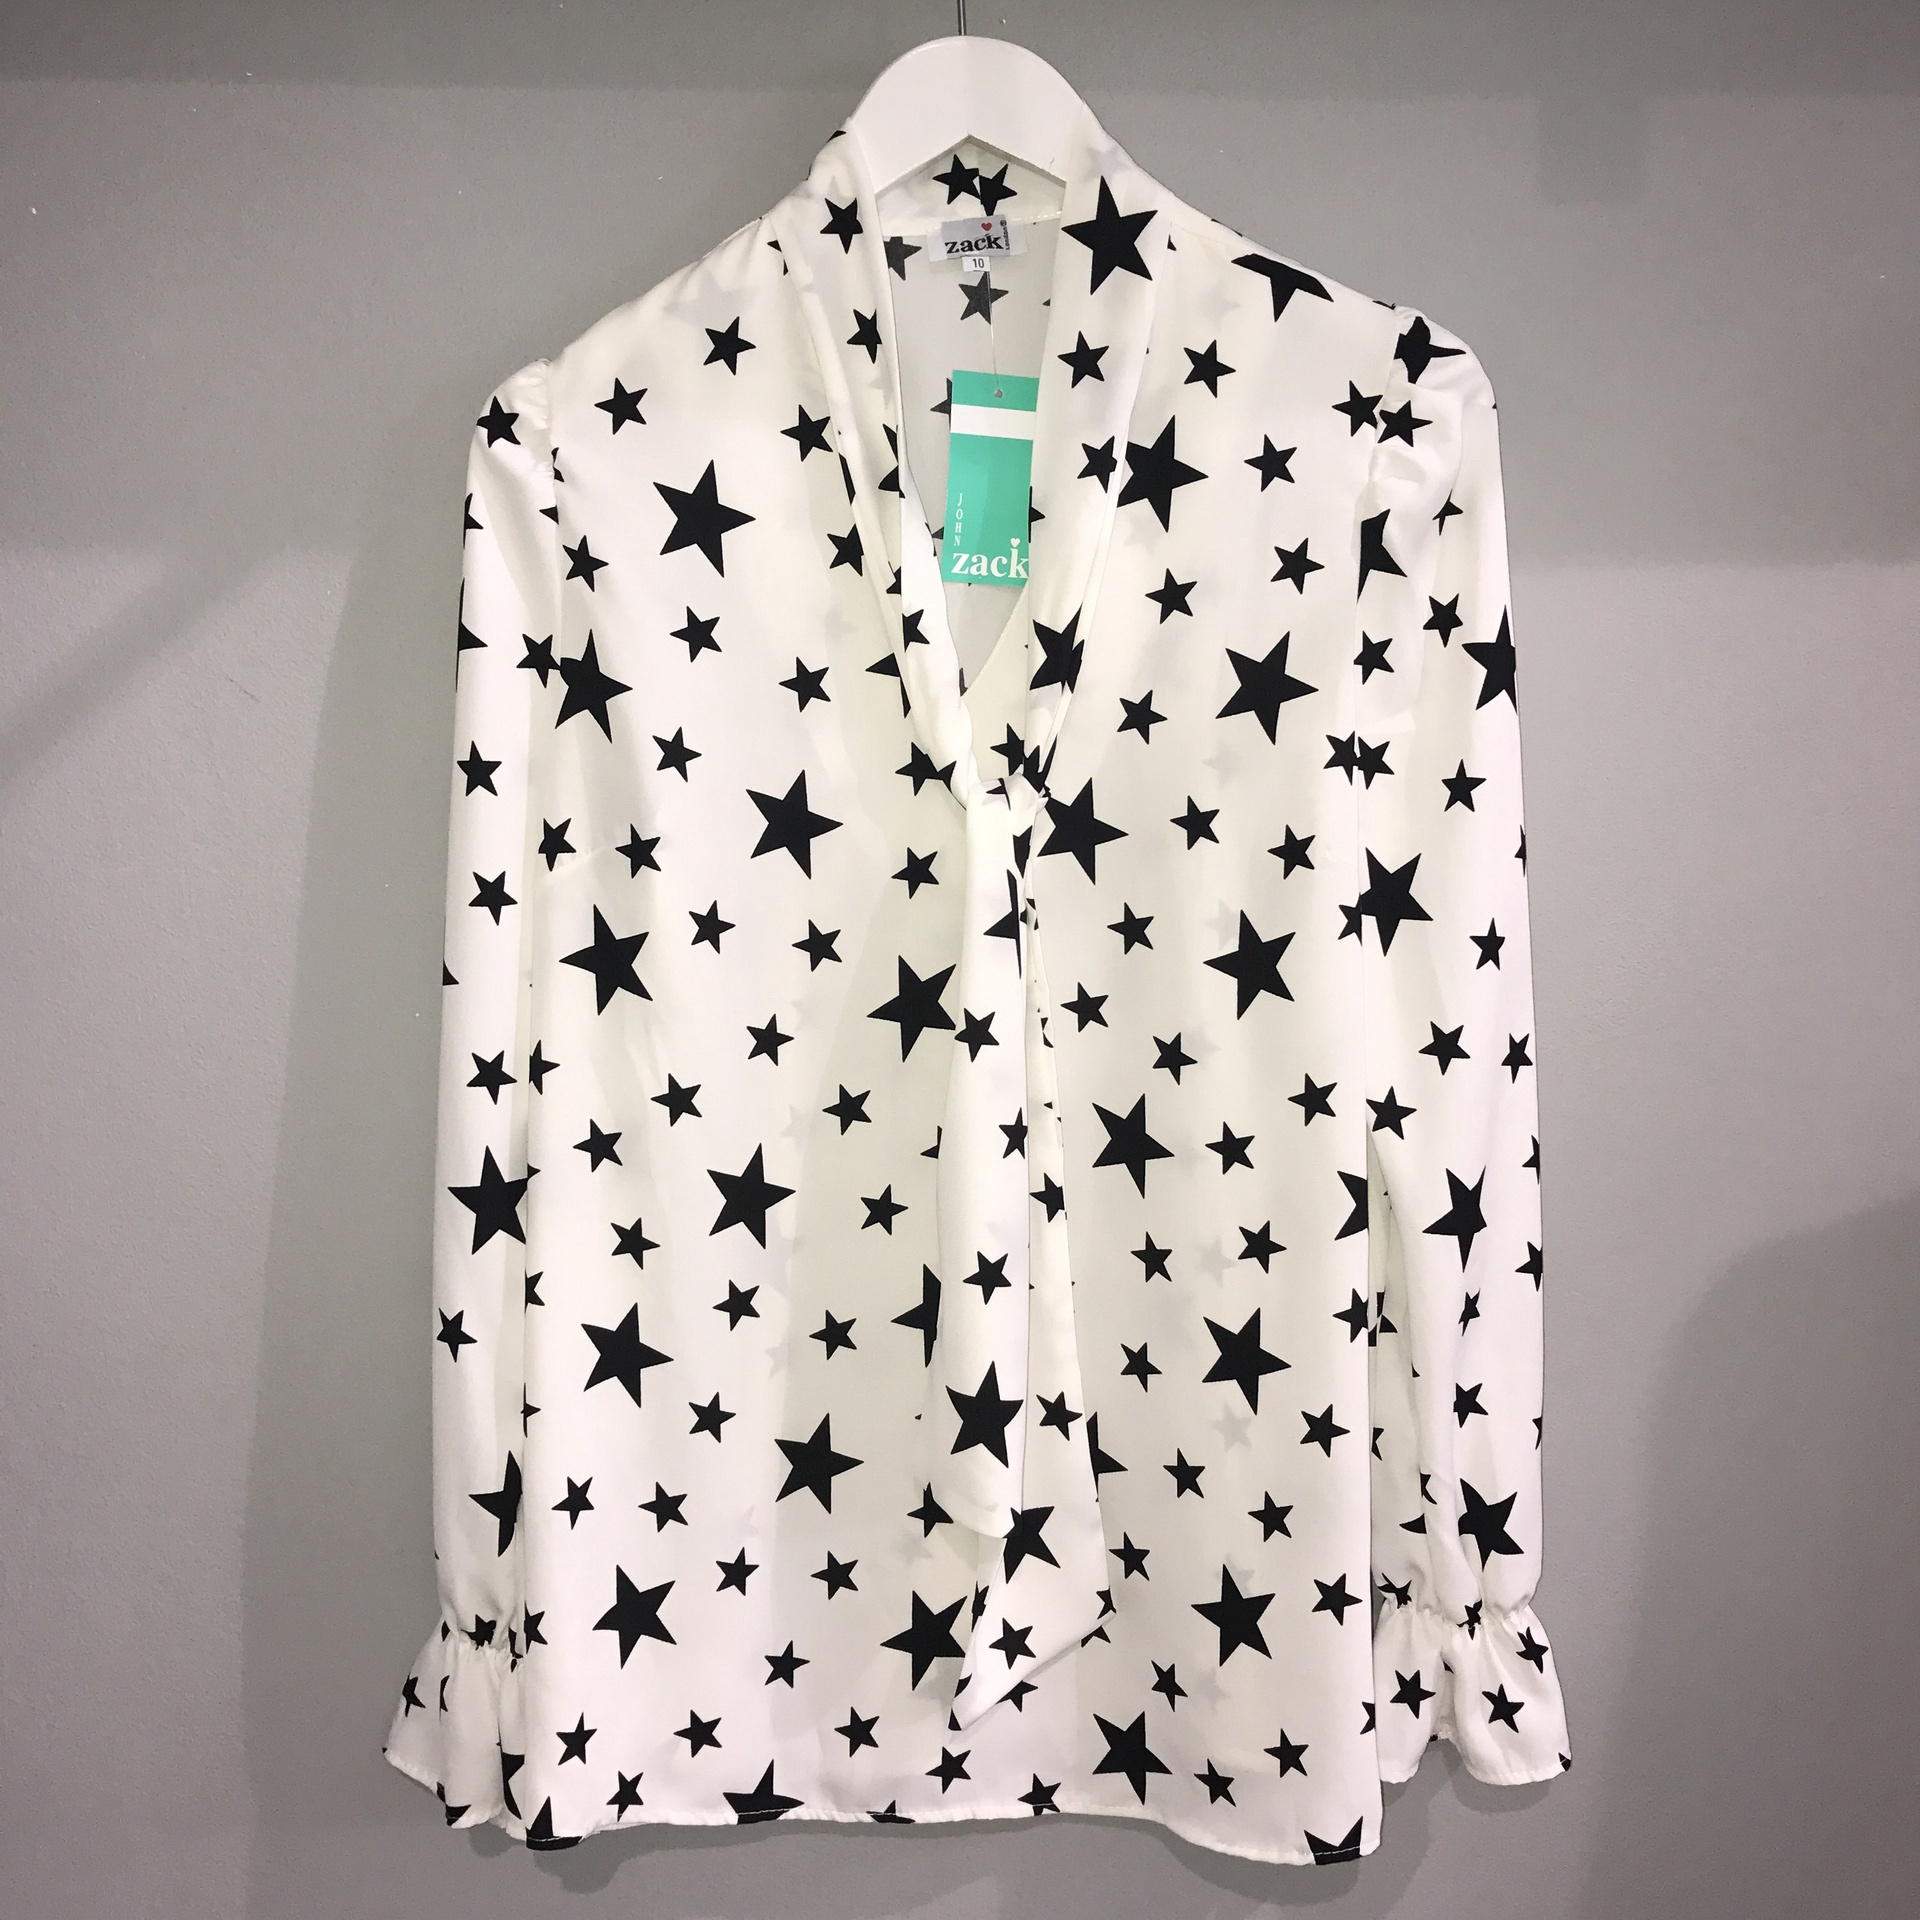 Zack White Star Blouse